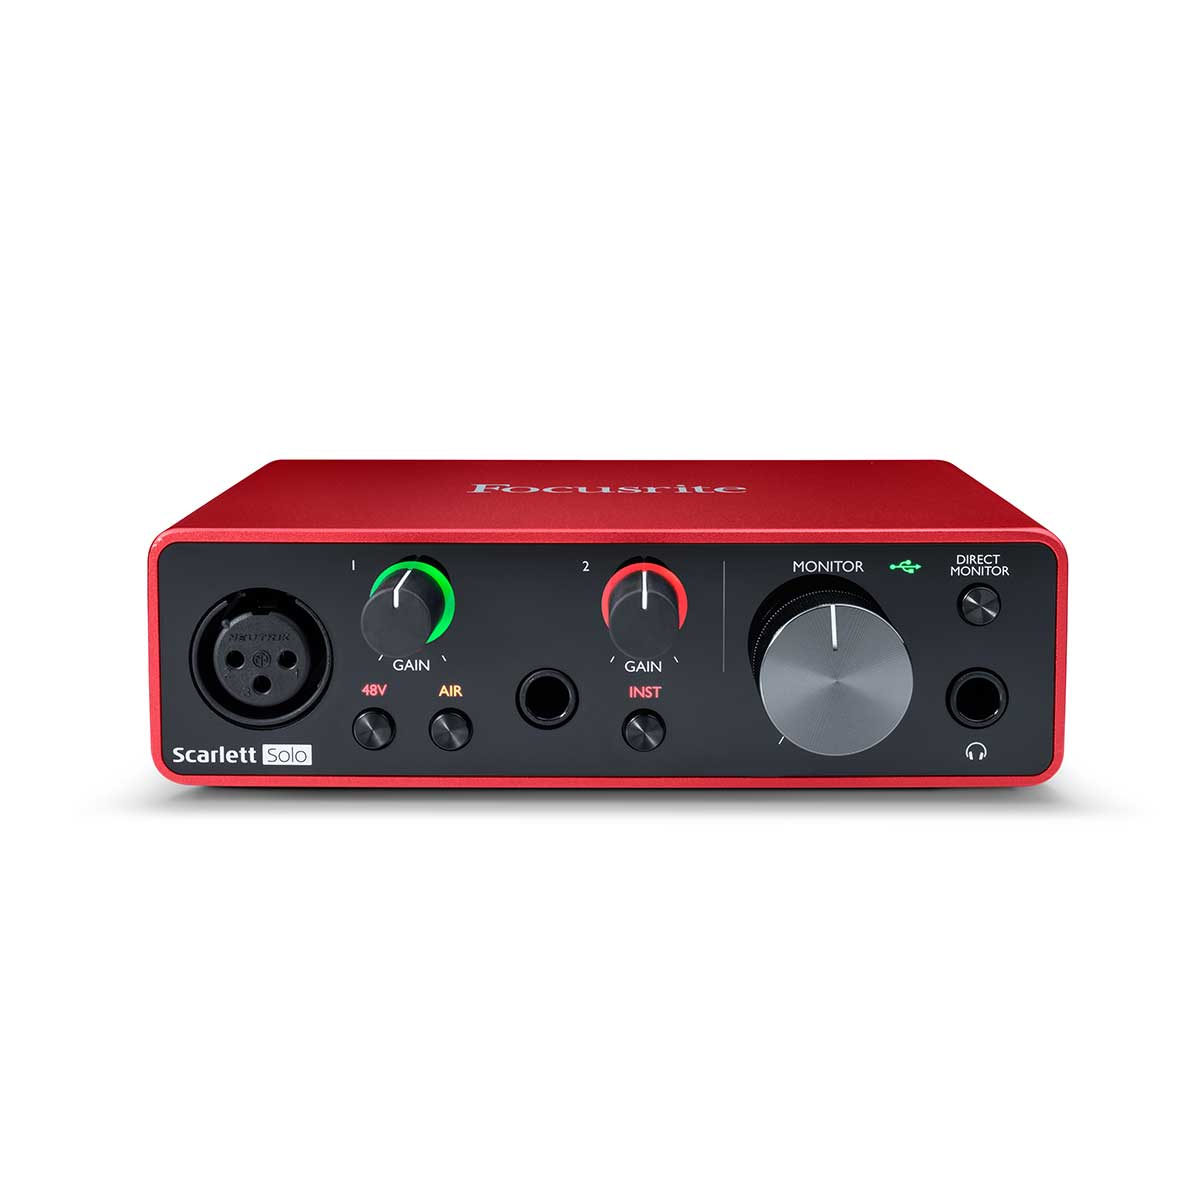 Focusrite Scarlett Solo (Gen 3) 2-in, 2-out USB audio interface